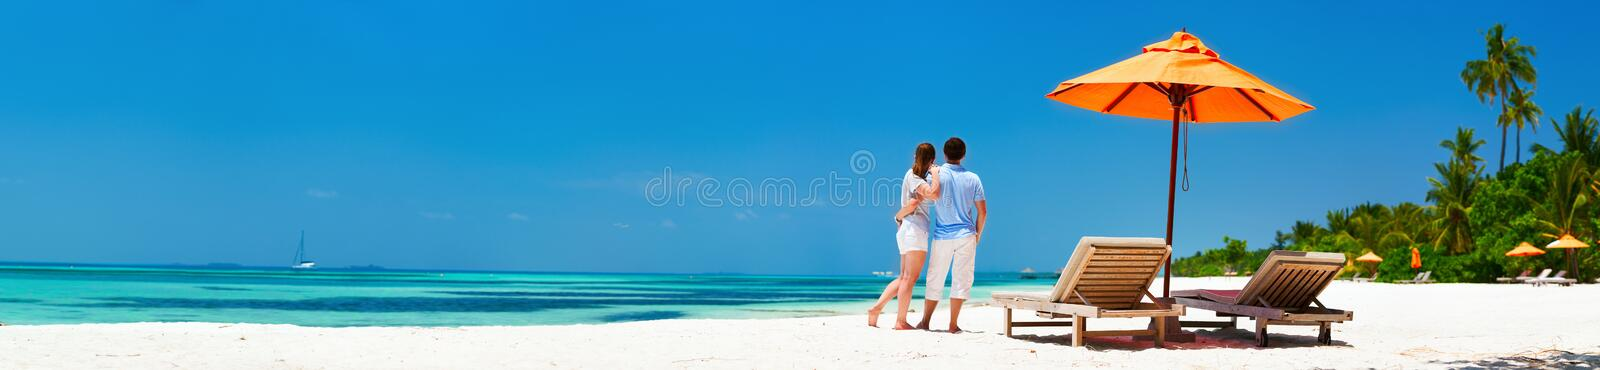 Couple at tropical beach. Romantic couple on a tropical beach during honeymoon vacation, wide panorama perfect for banners